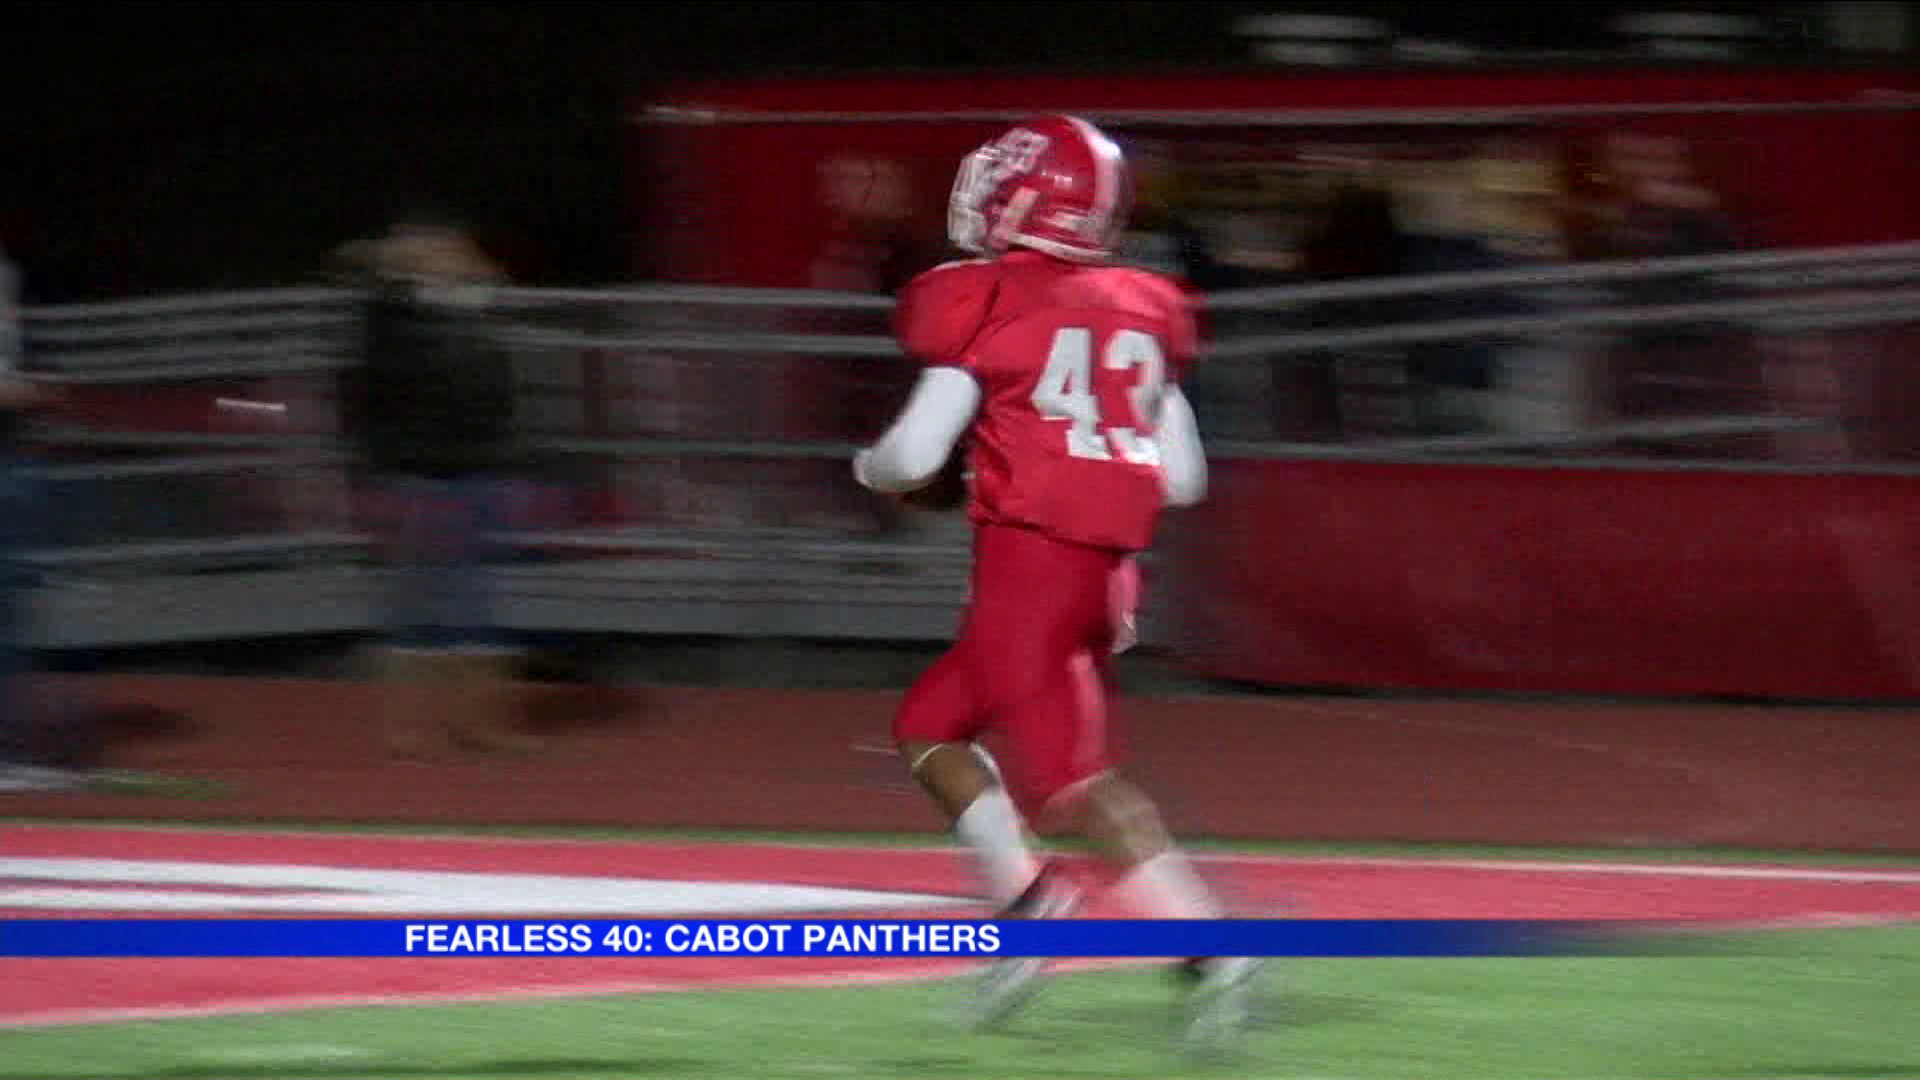 Fearless 40: Cabot Panthers